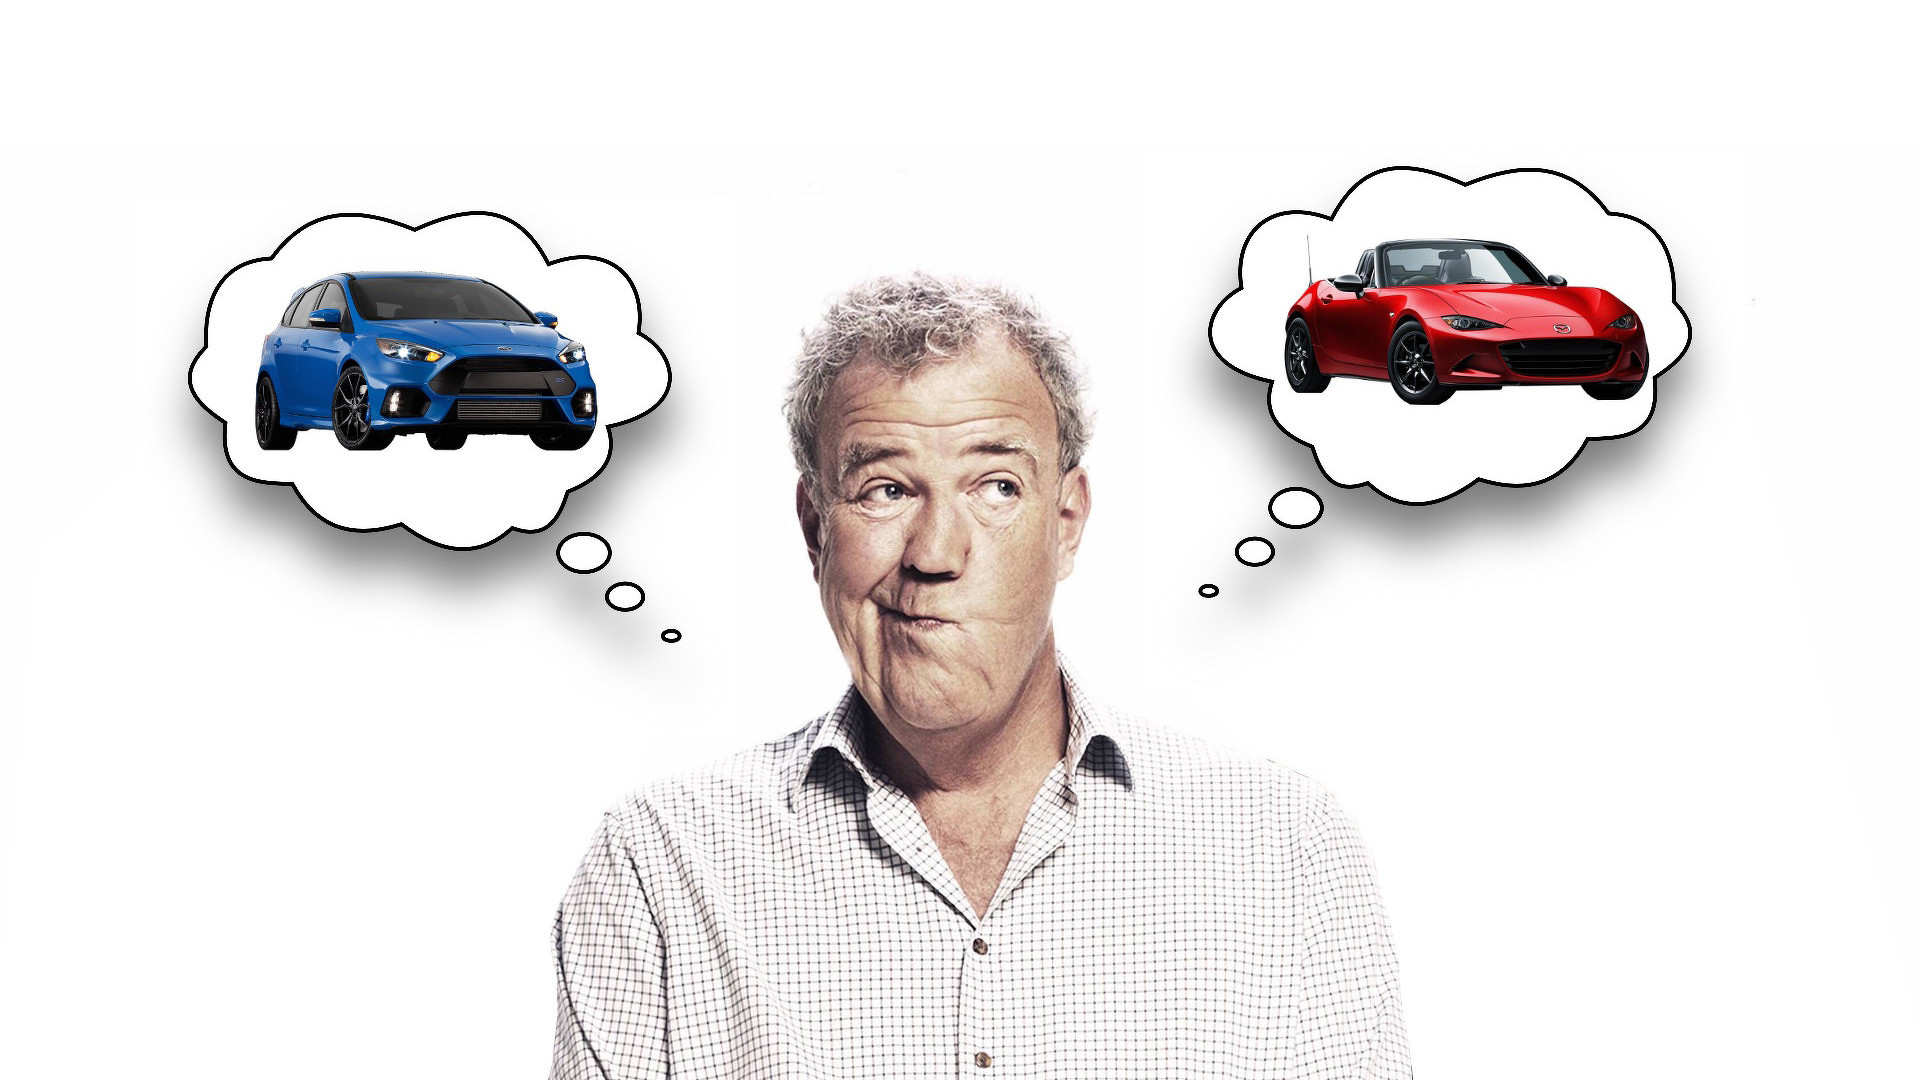 Jeremy Clarkson chooses his top 10 cars for 2015 and 2016